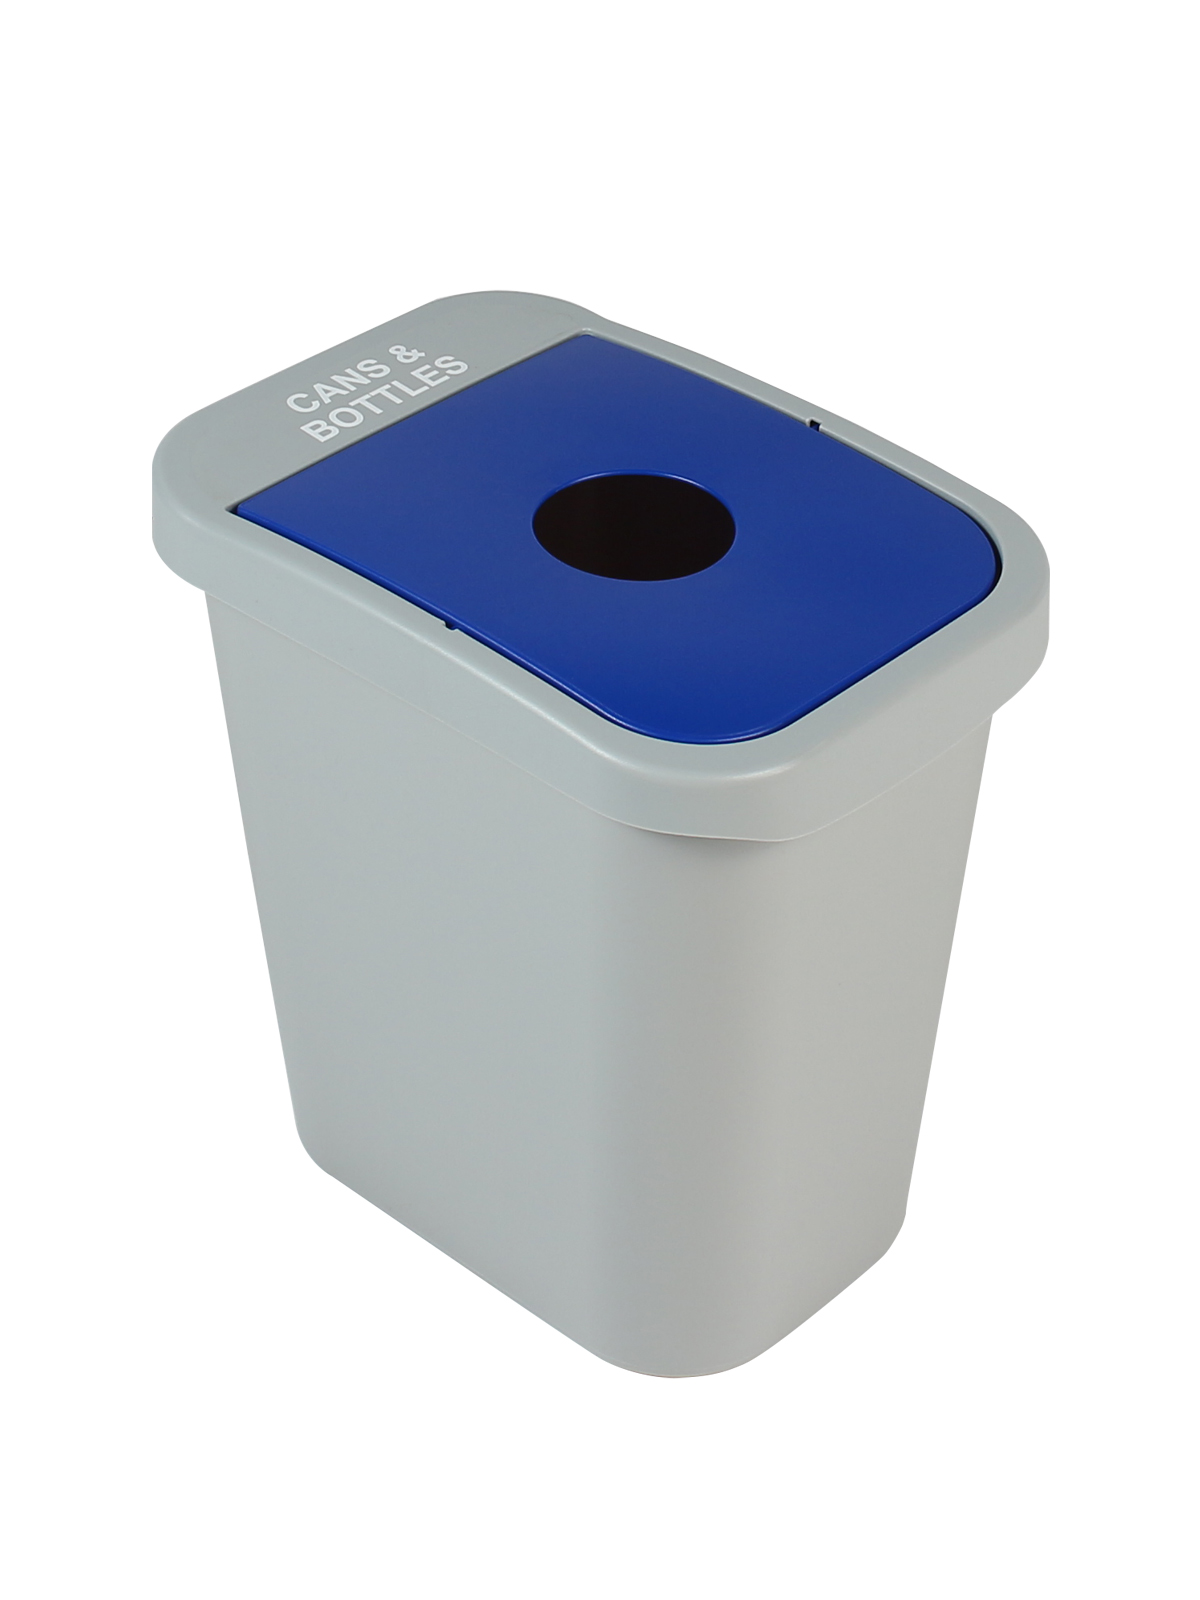 BILLI BOX - SINGLE 7 G - CIRCLE - GREY | BLUE - CANS & BOTTLES title=